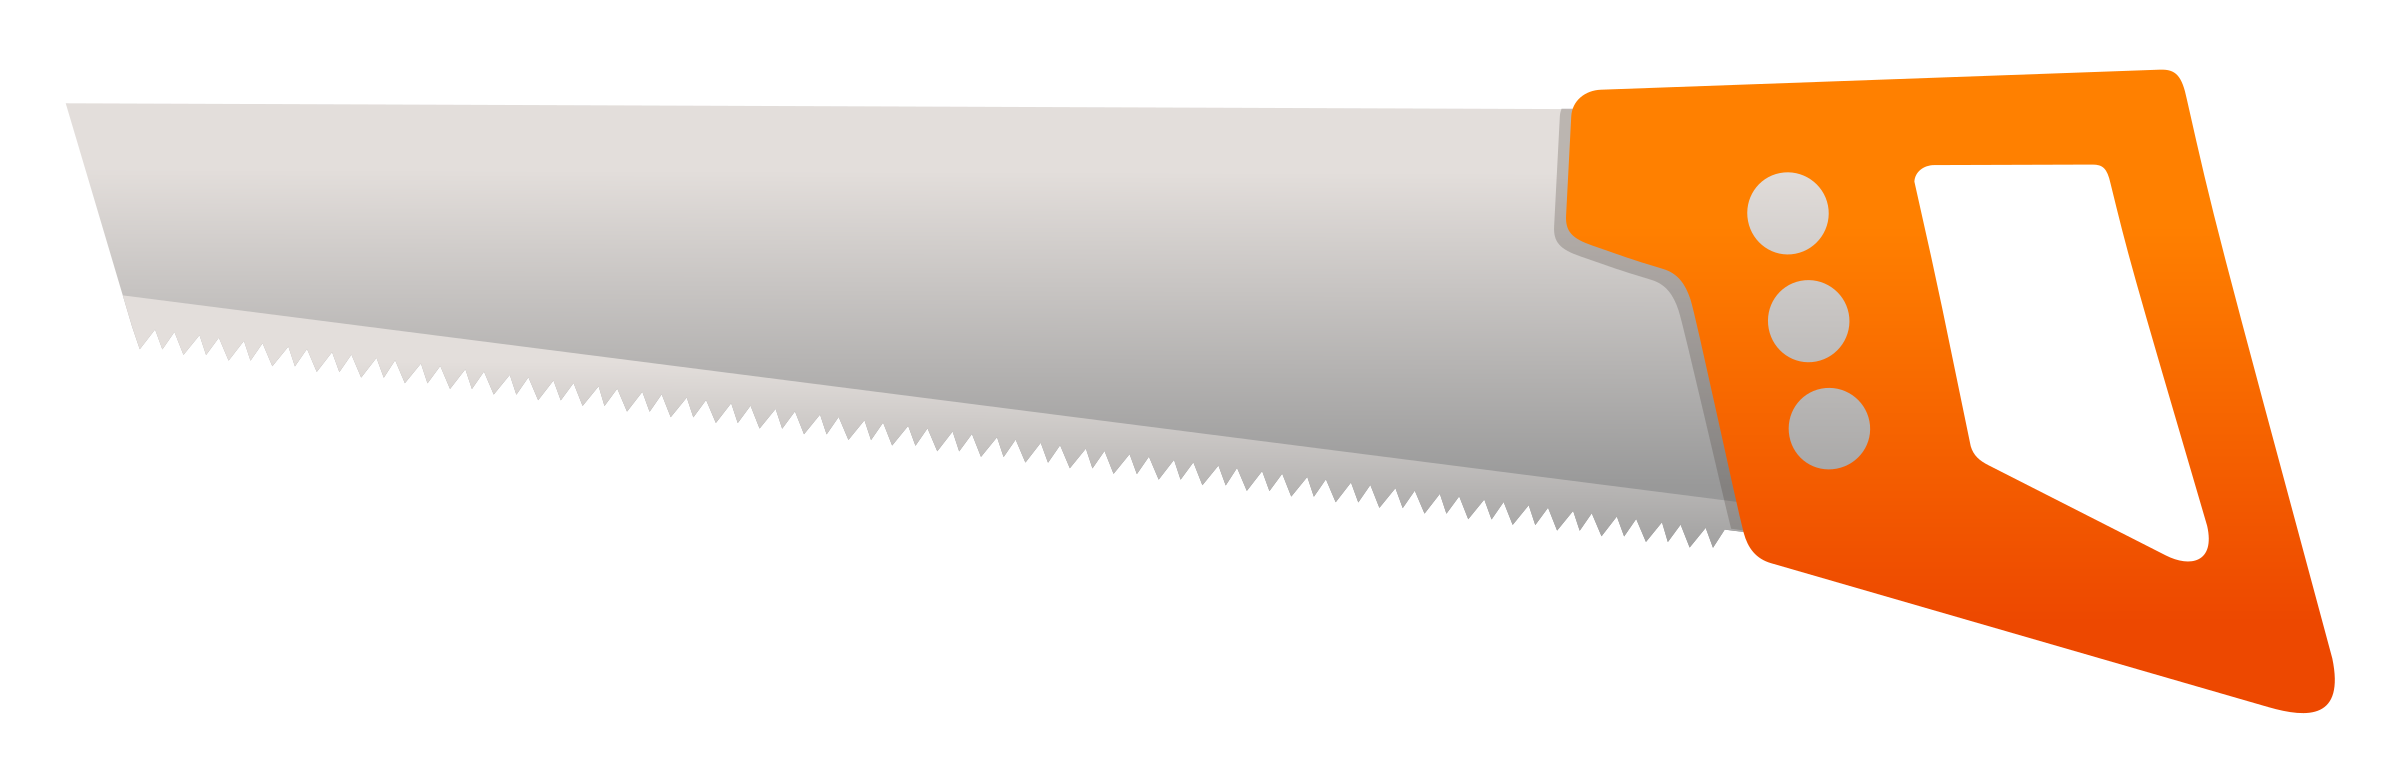 Blade vector hand saw. Clipart big image png